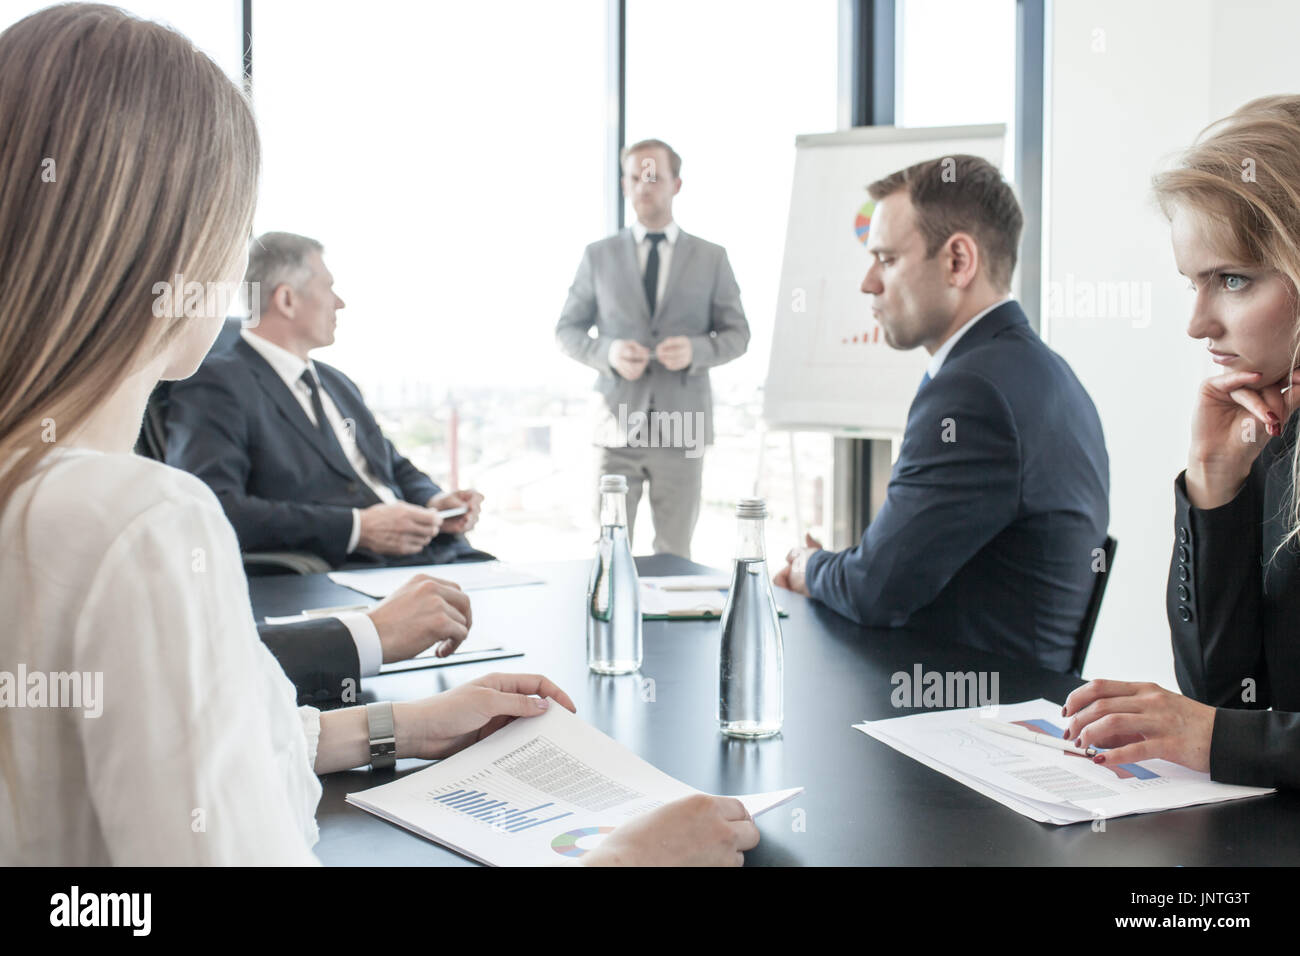 Group of business people at meeting watching presentation of reports in diagrams and graphs at flip chart in offfice - Stock Image